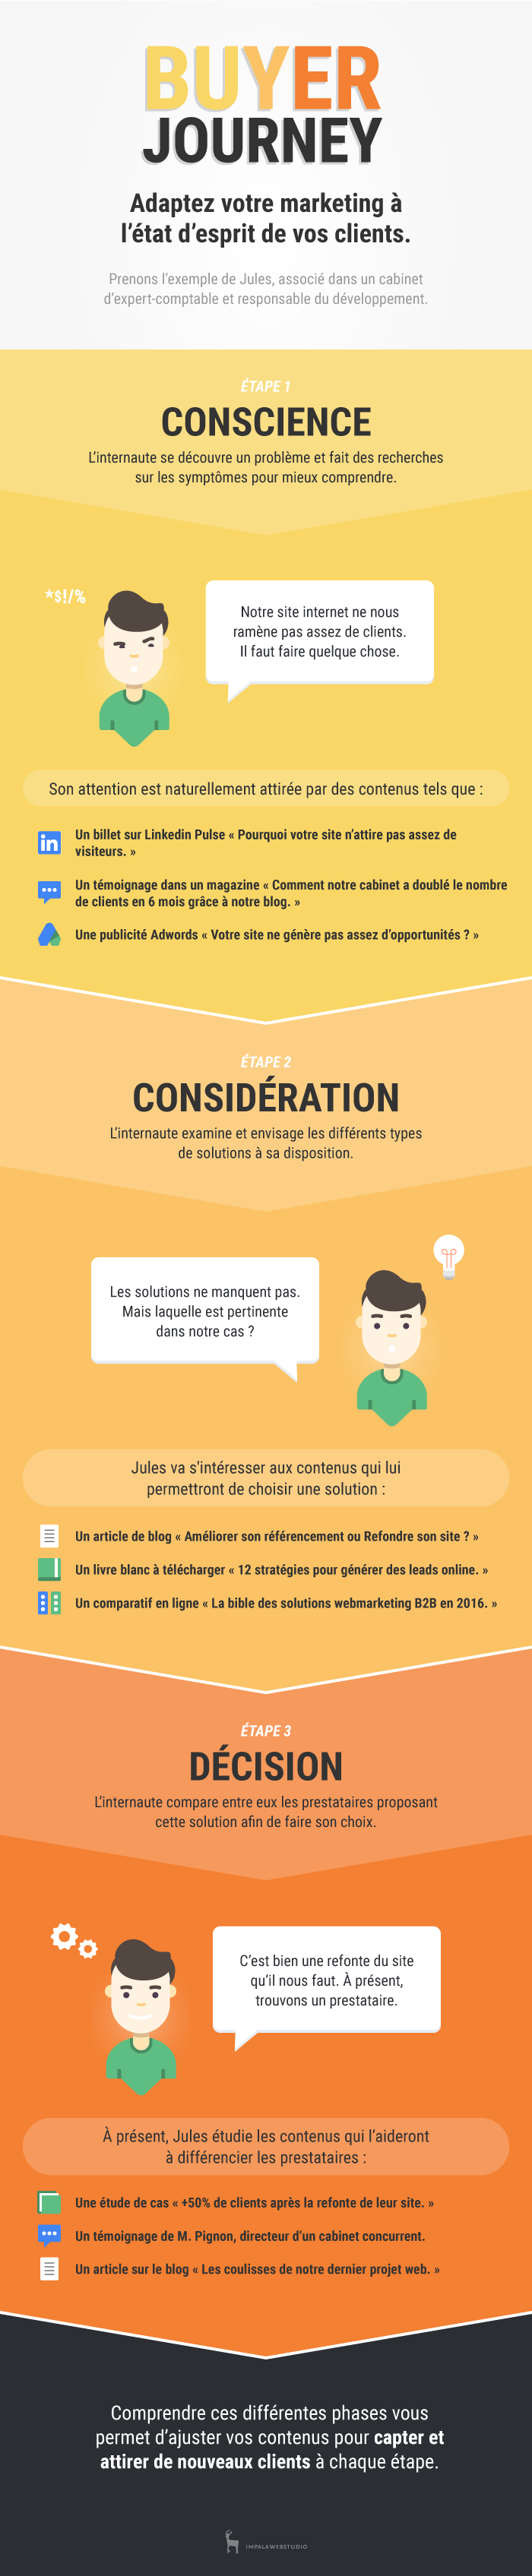 IWS_infographie-buyer-journey_01.png